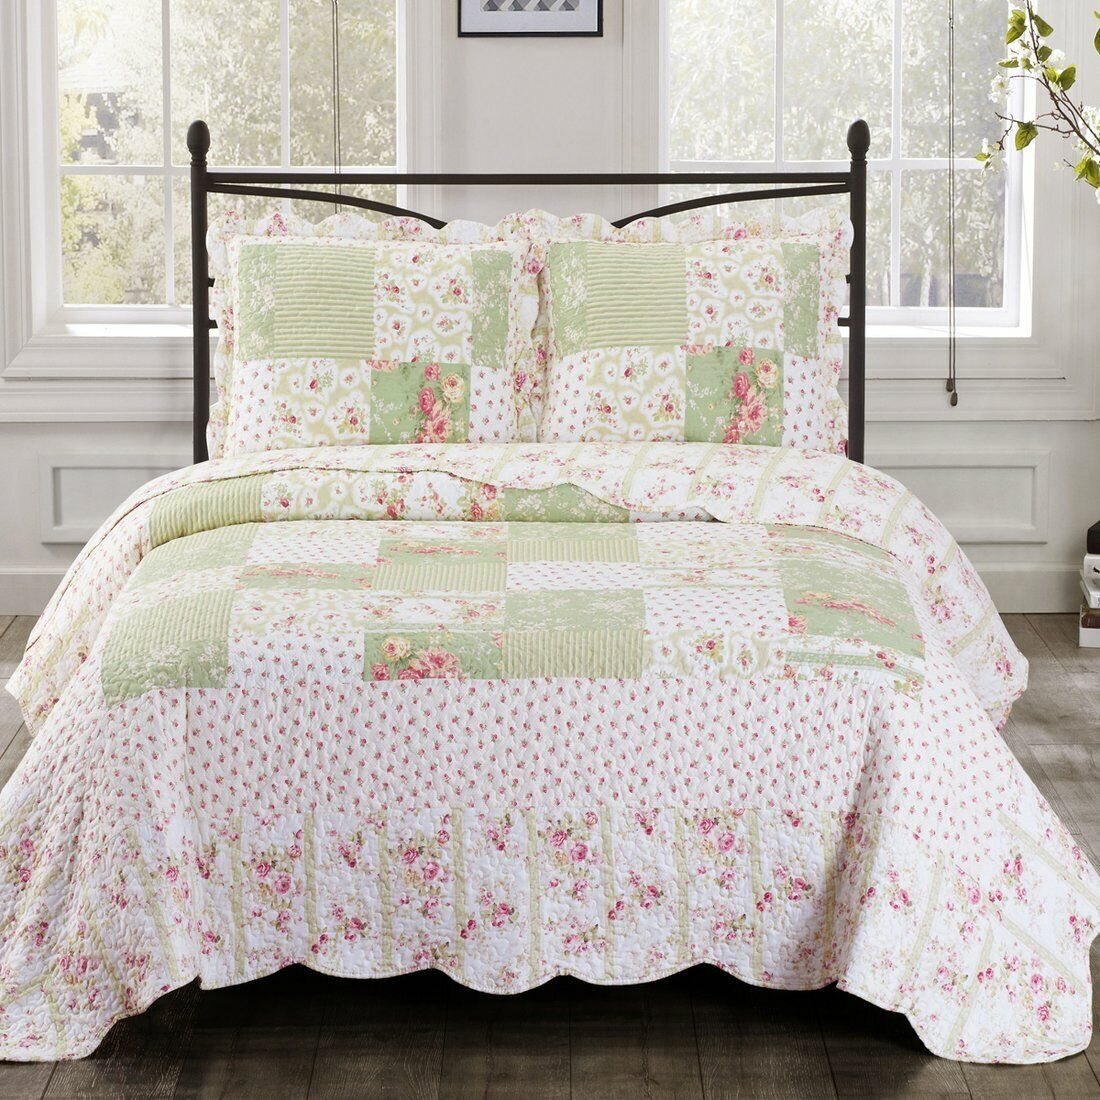 upland quilted floral patchwork printed 3 piece